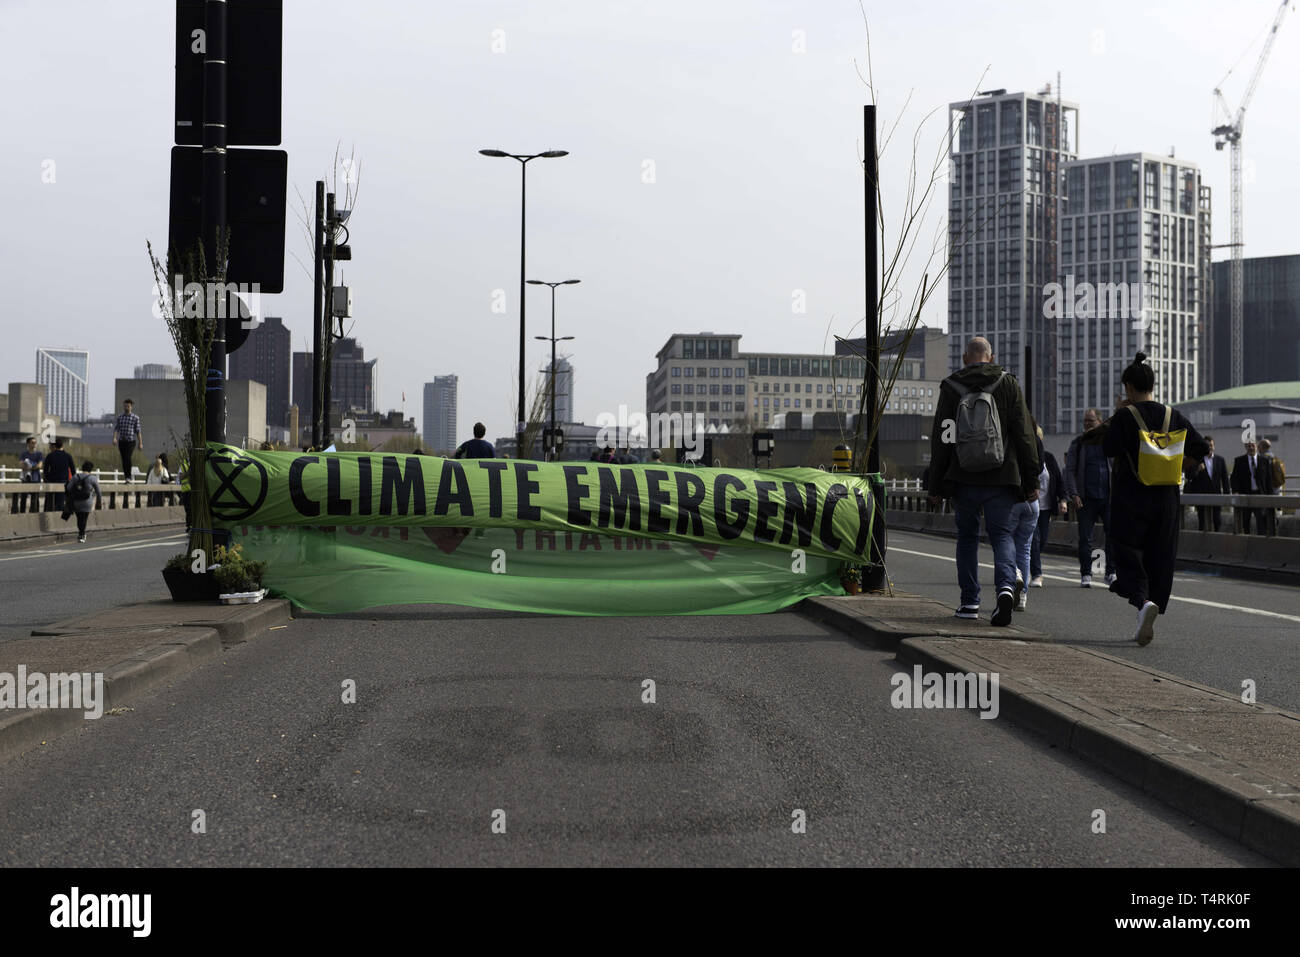 London, Greater London, UK. 18th Apr, 2019. Large Extinction Rebellion banner that reads Climate emergency is seen at Waterloo bridge blocking the street during the Extinction Rebellion Strike in London.Environmental activists from Extinction Rebellion movement hold for fourth consecutive day Waterloo Bridge in London. Activists has been parked a lorry on the bridge blocking the street causing disruptions. Police have been arresting protesters that refuse to head to Marble Arch. Extinction Rebellion demands from the government direct actions on the climate, reduce carbon emissi Stock Photo